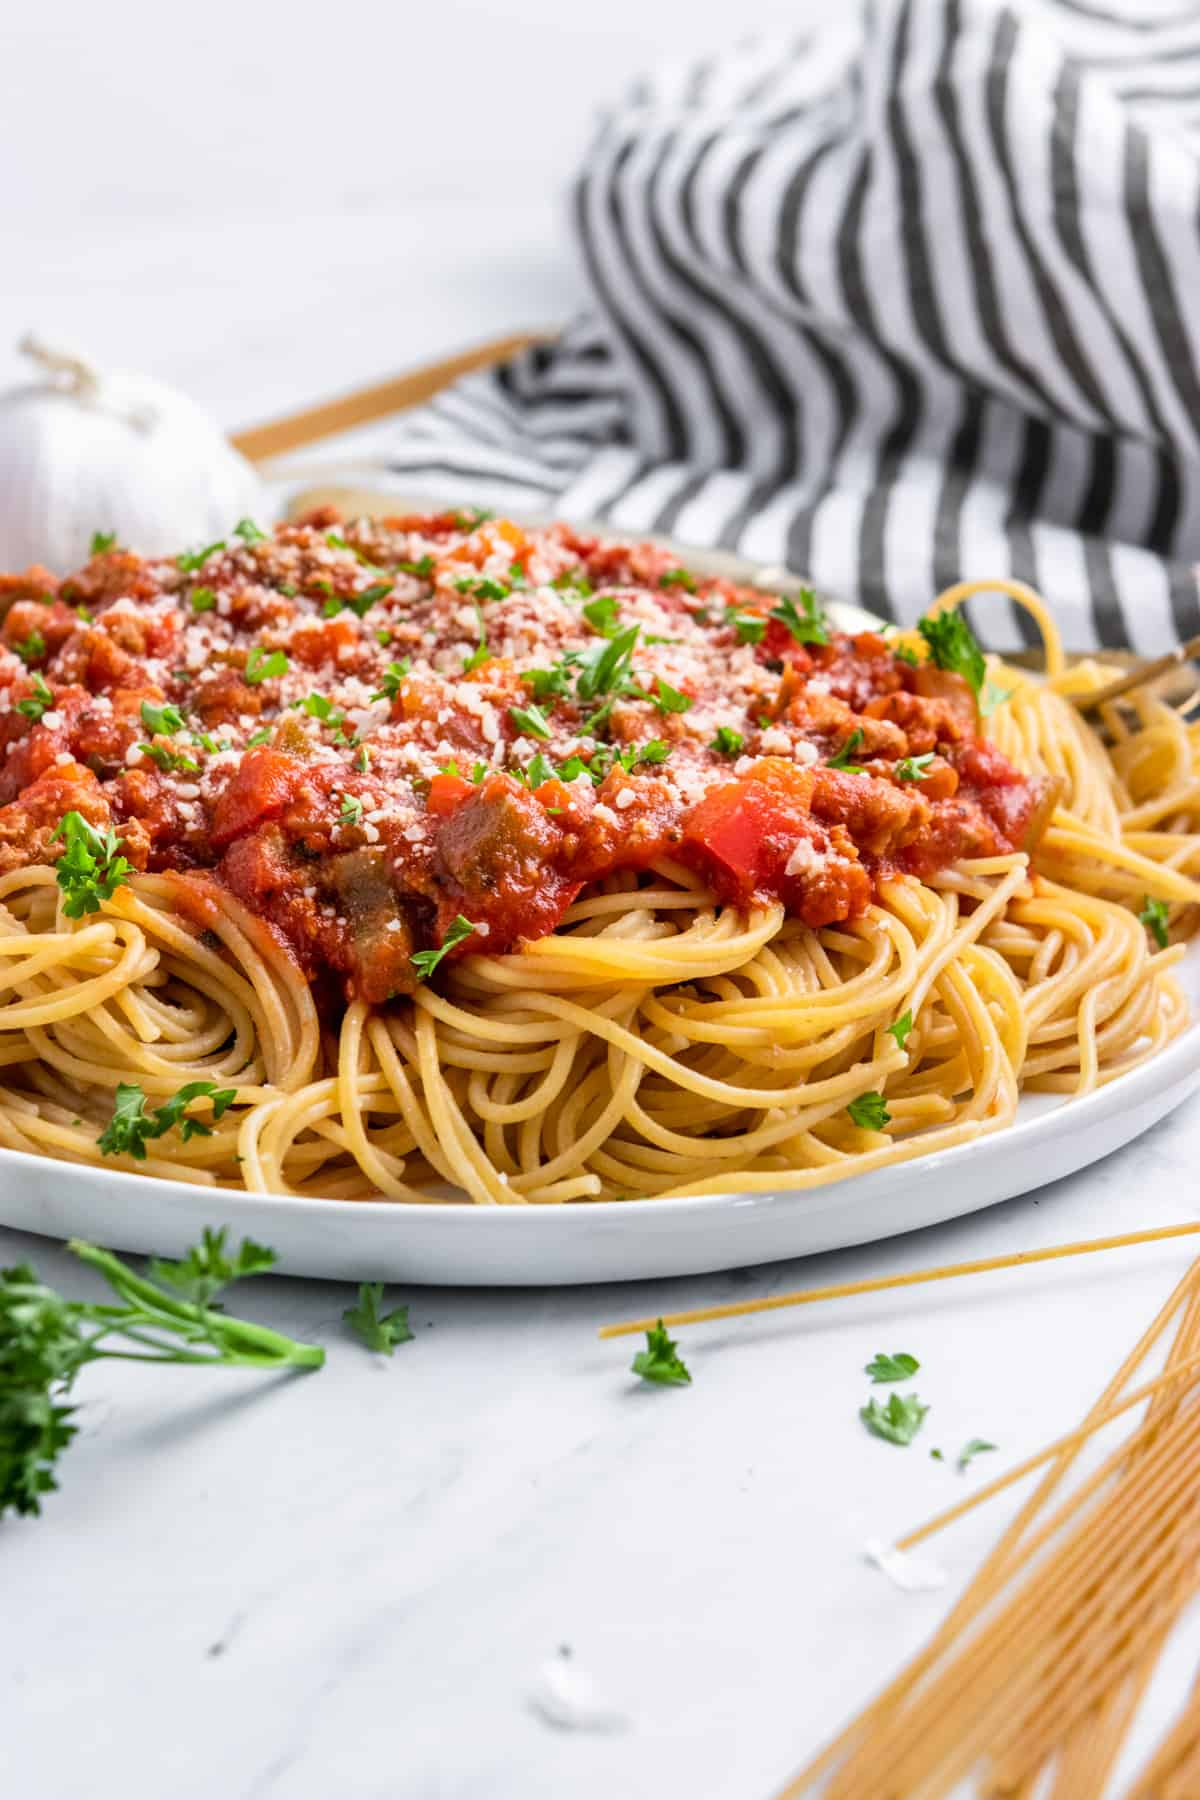 Plate of spaghetti with meat sauce and parmesan and striped napkin.